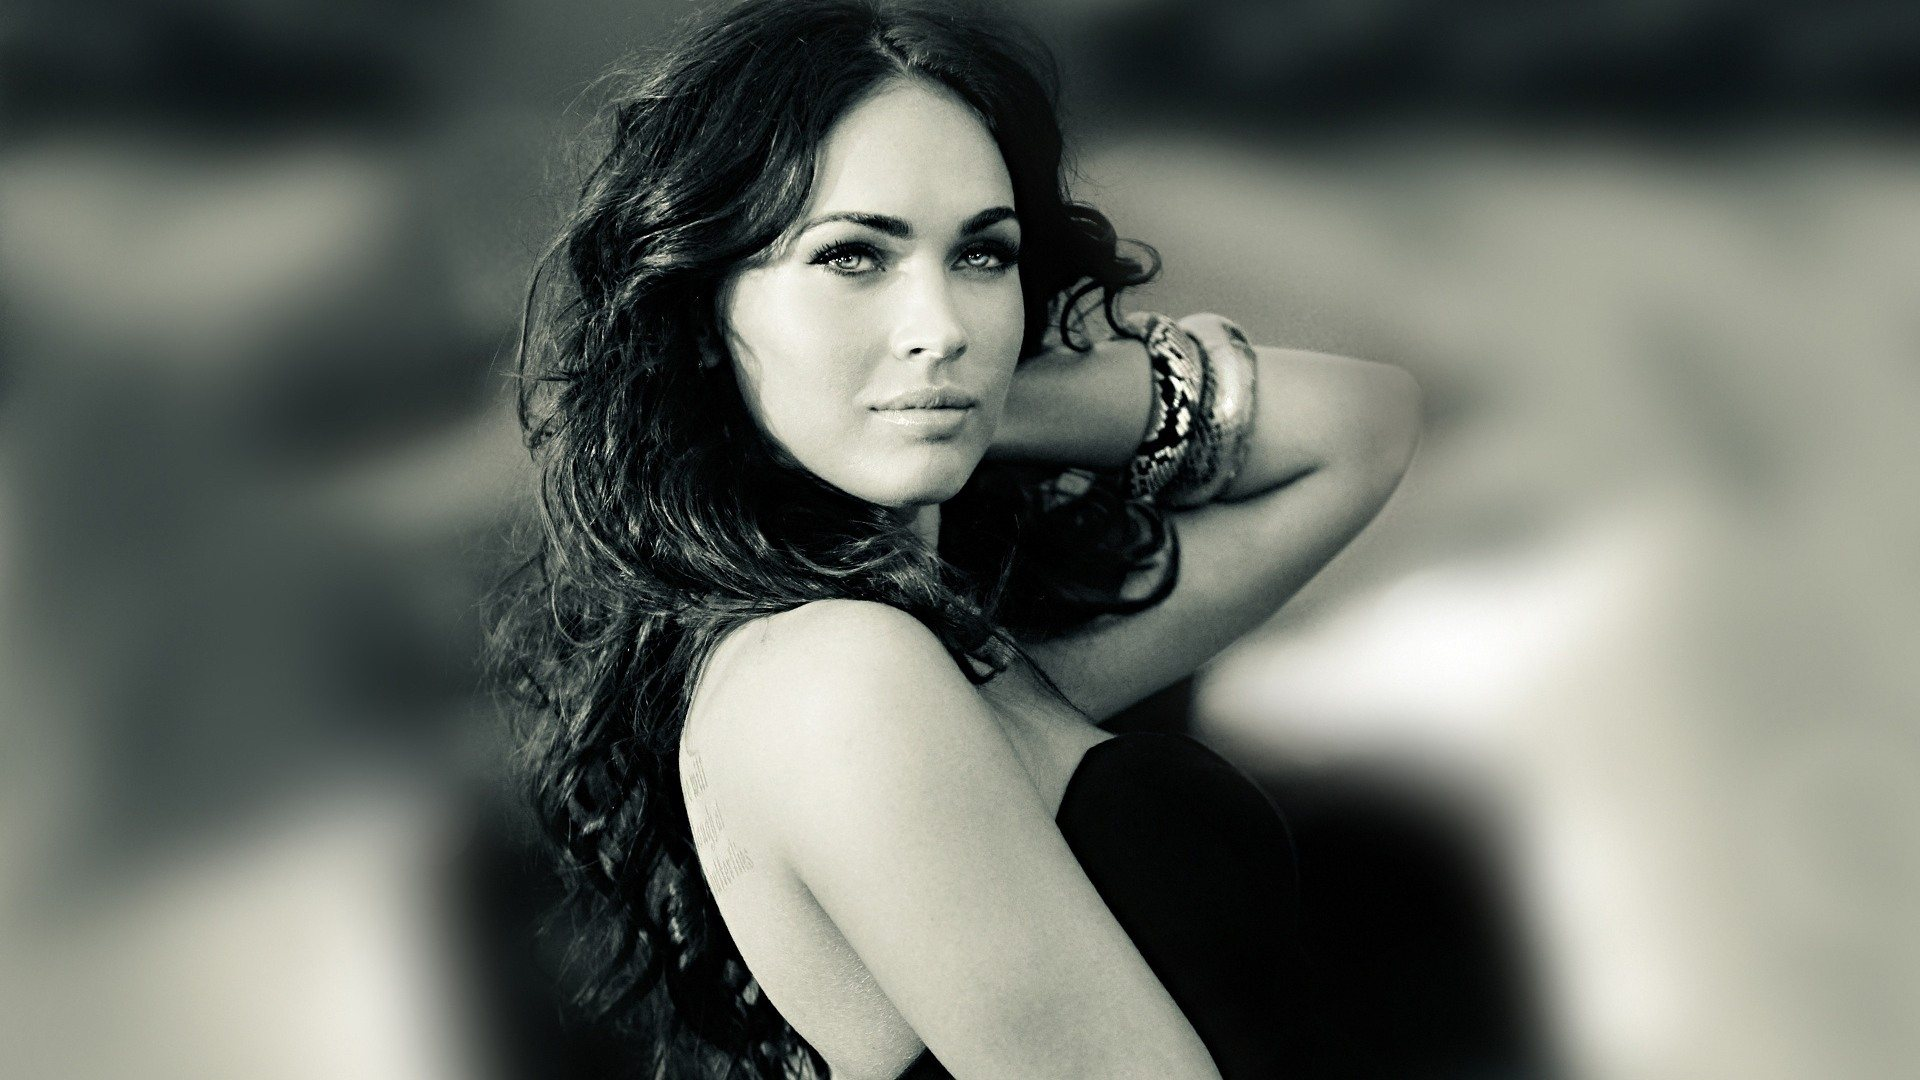 megan fox black and white wallpaper hot megan fox black 1920x1080